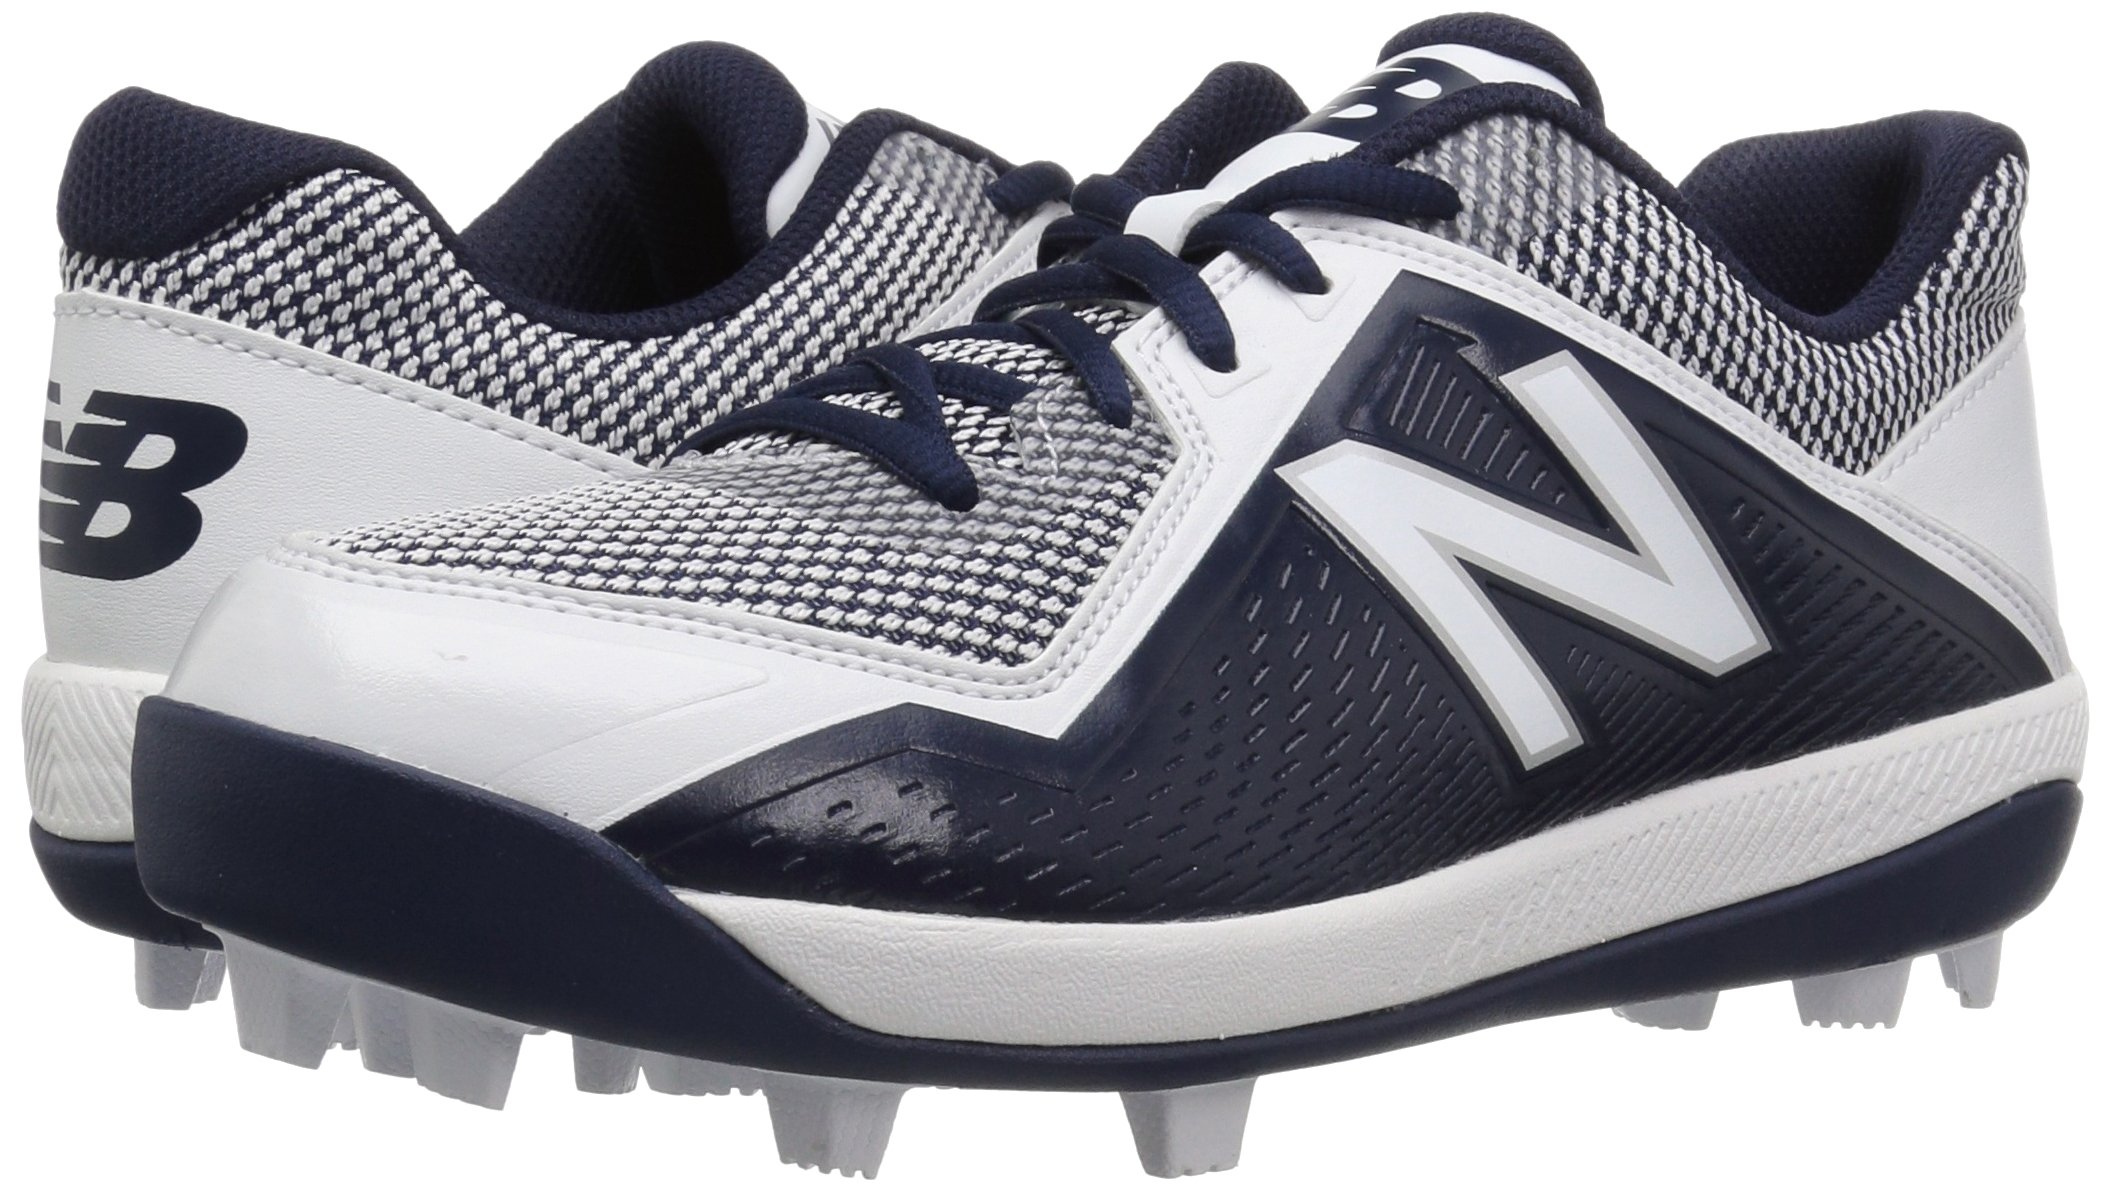 New Balance Boys' 4040v4, Navy/White, 1 W US Little Kid by New Balance (Image #6)